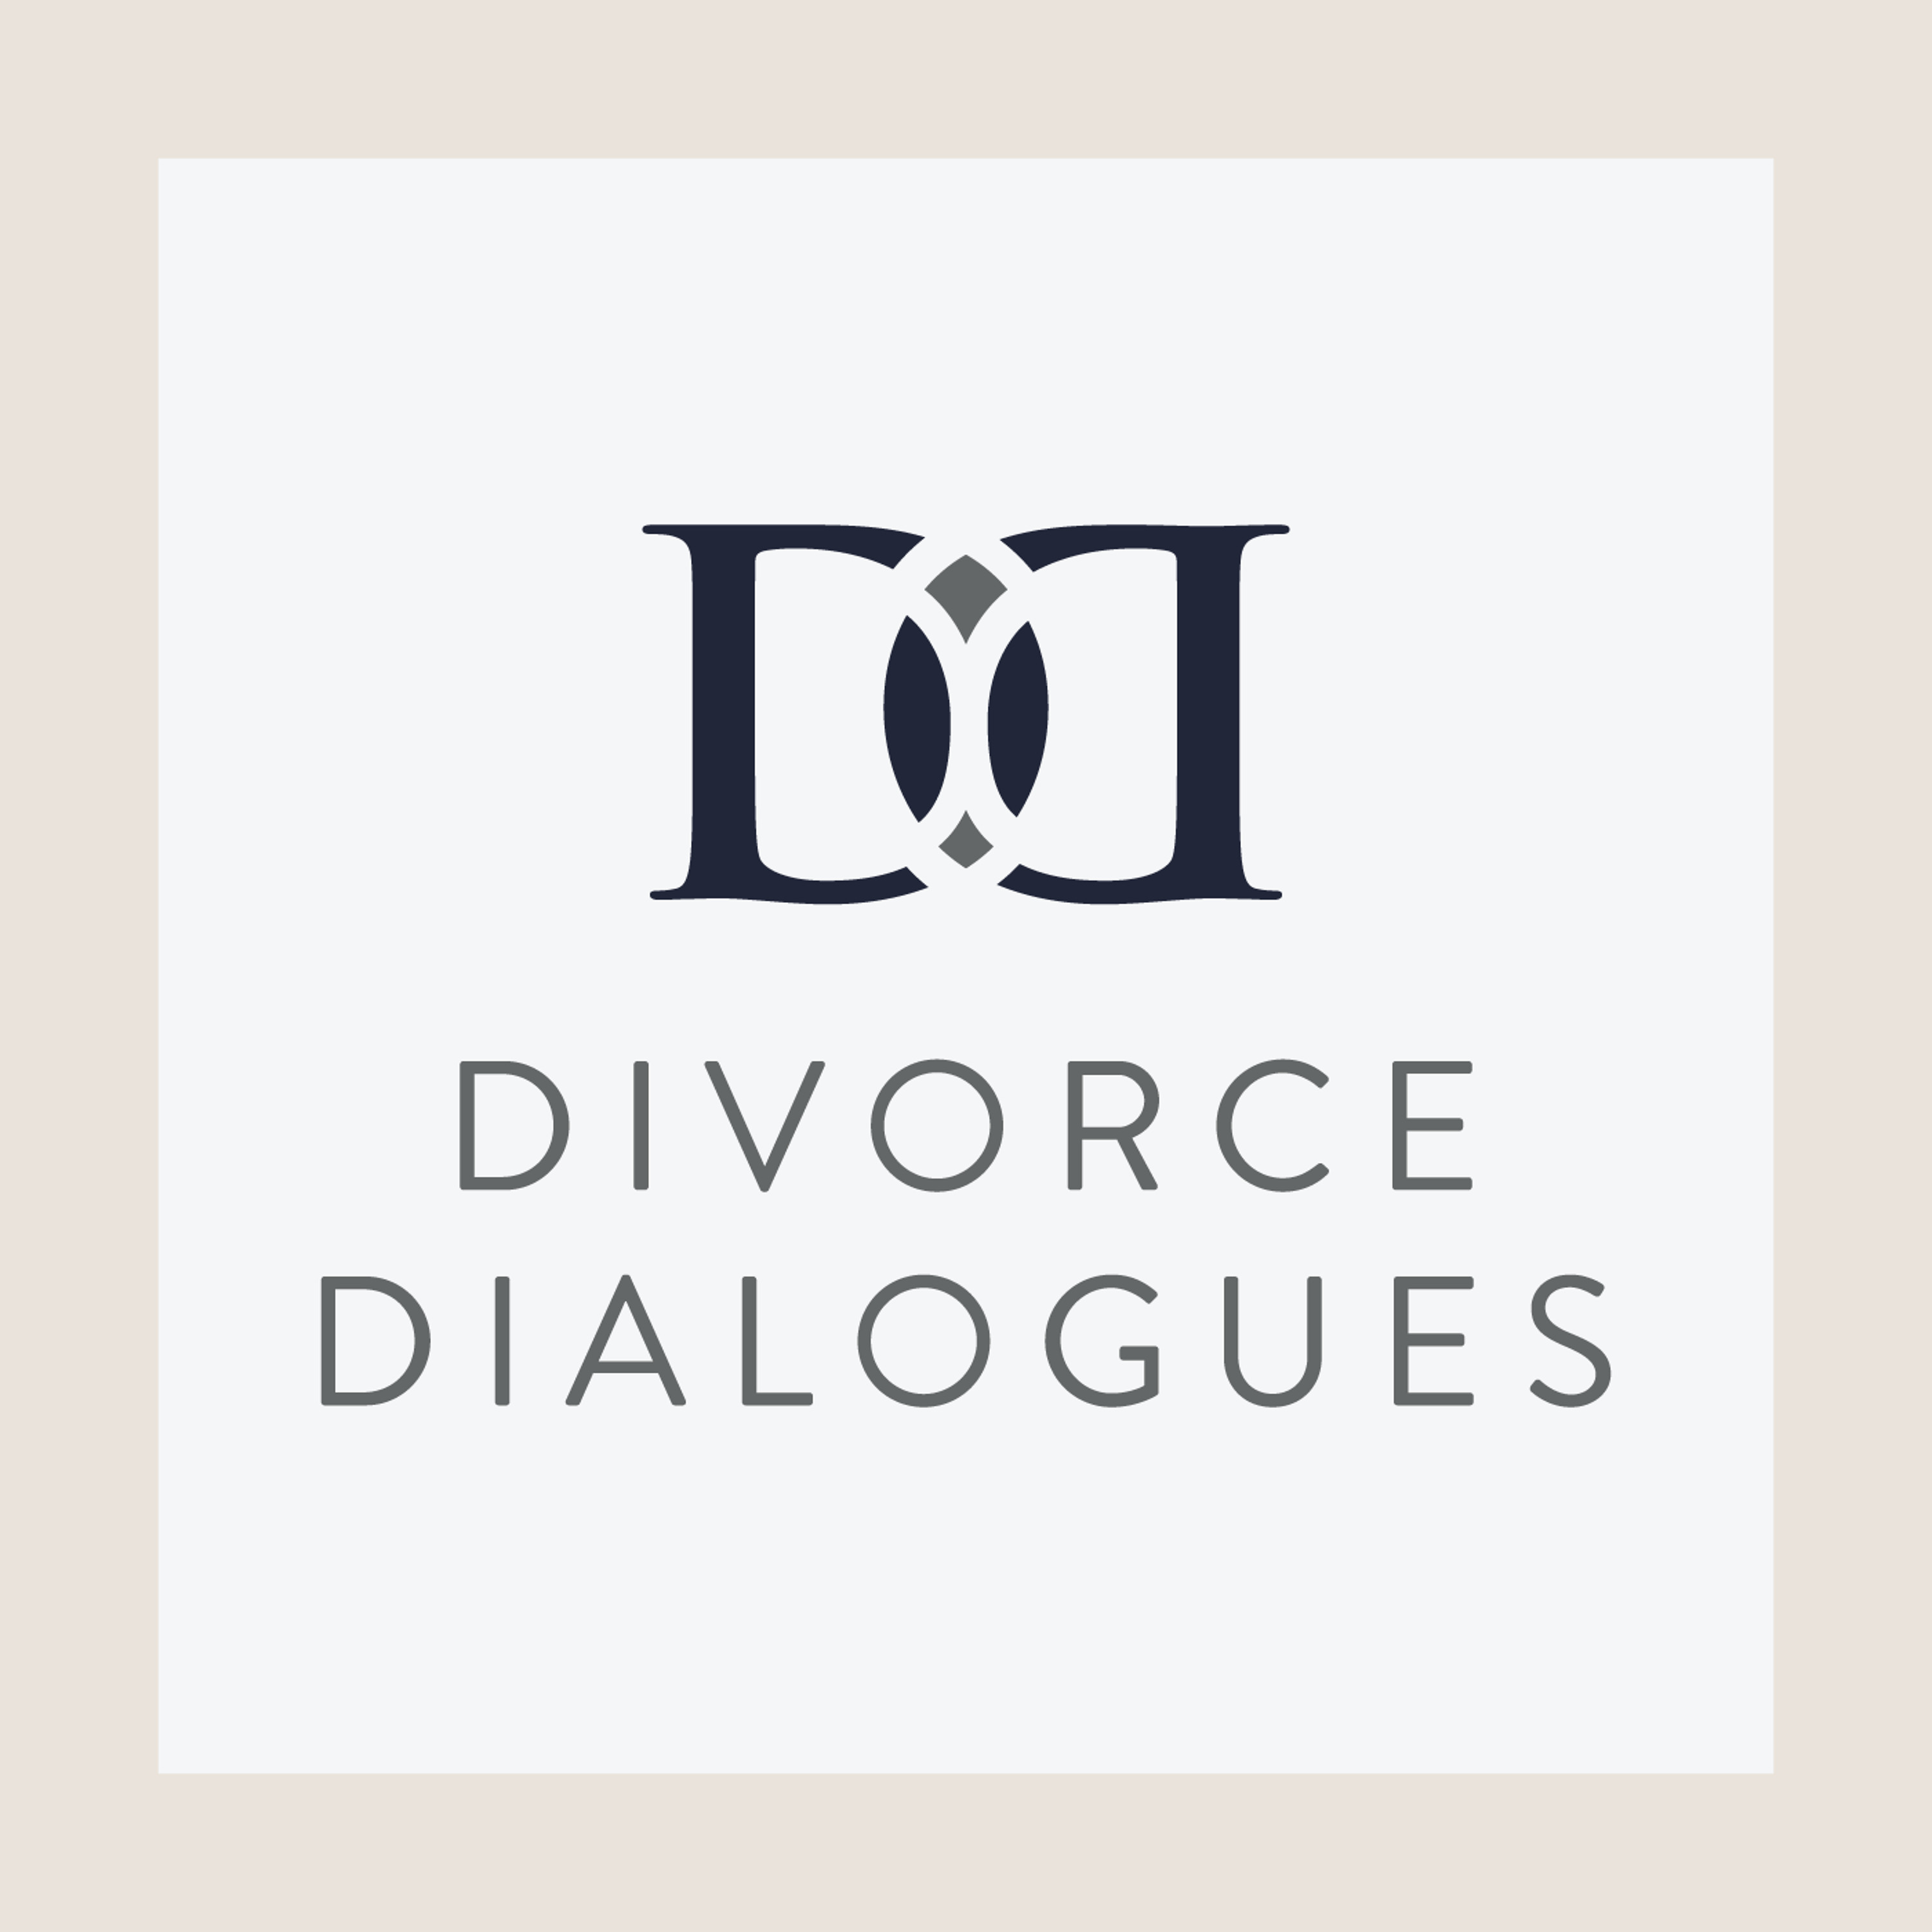 Divorce Dialogues - How to Talk About Divorce (Or Not) with Deborah Tannen